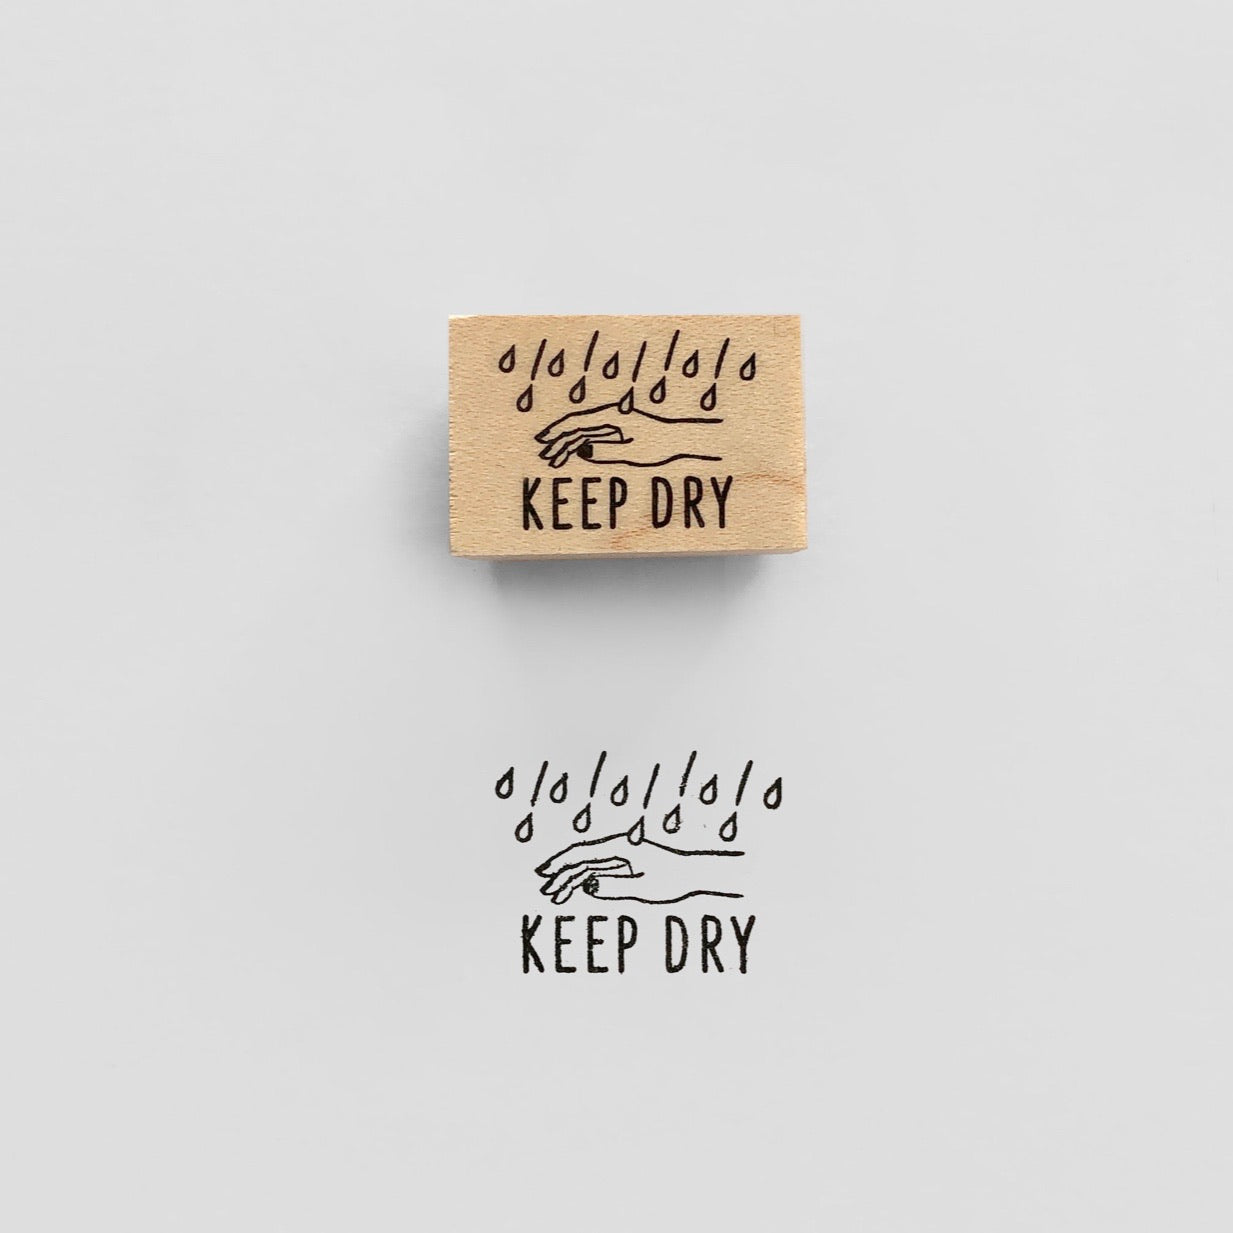 KEEP DRY Rubber Stamp スタンプ